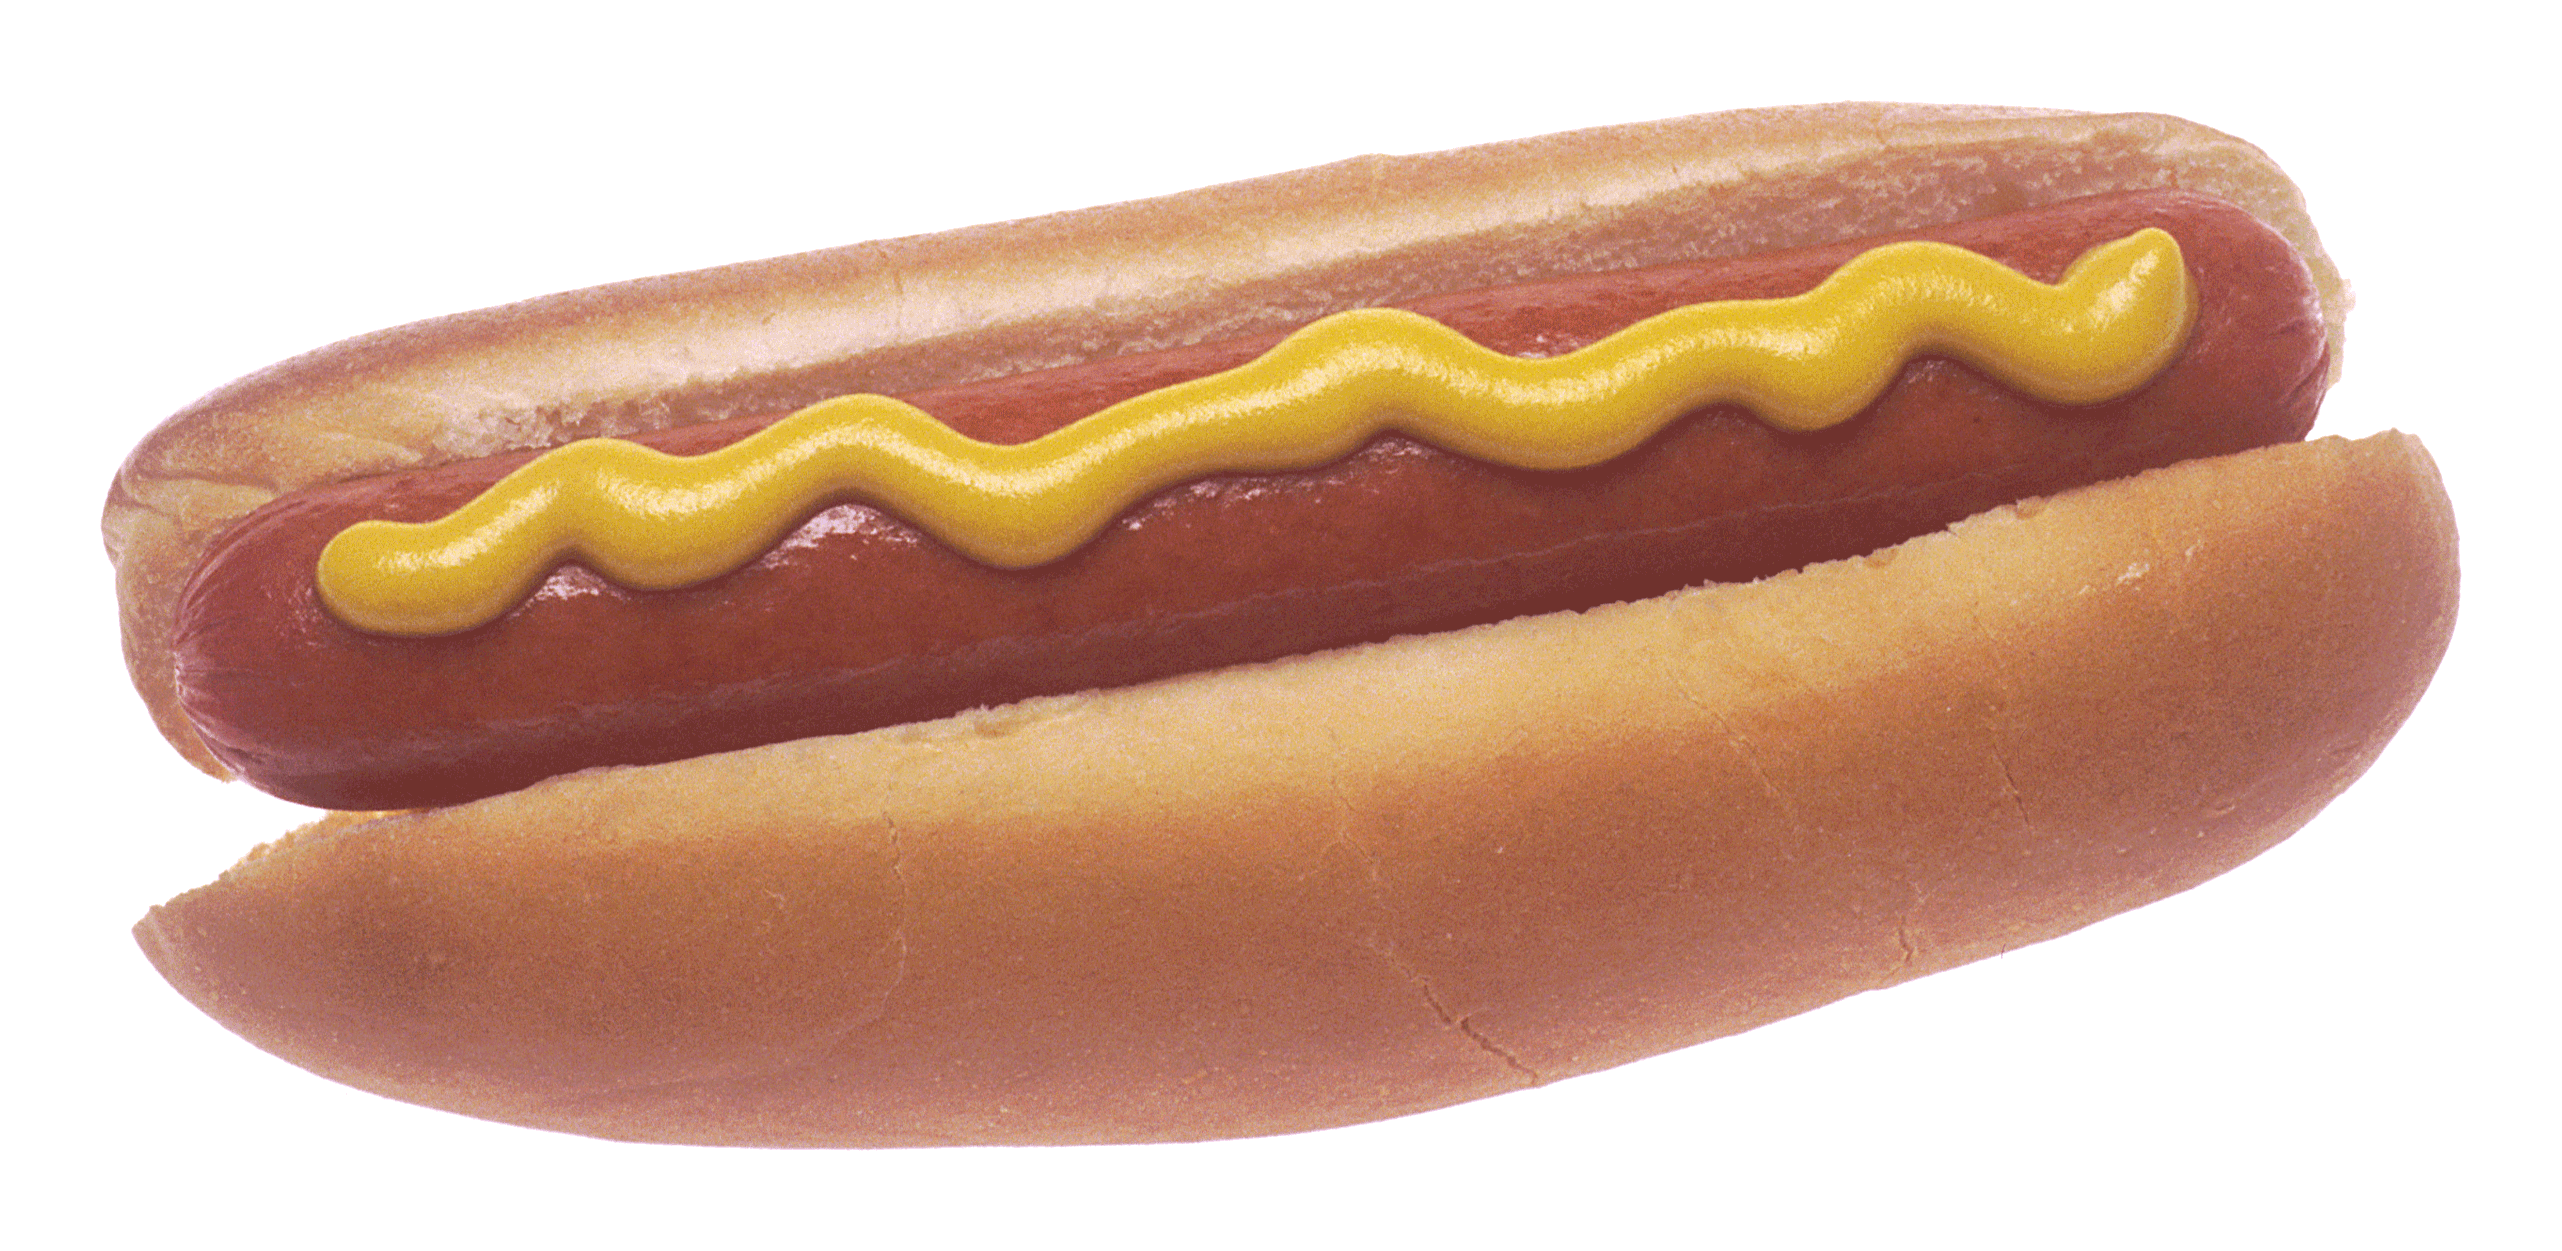 hot dog wikiwand #17631